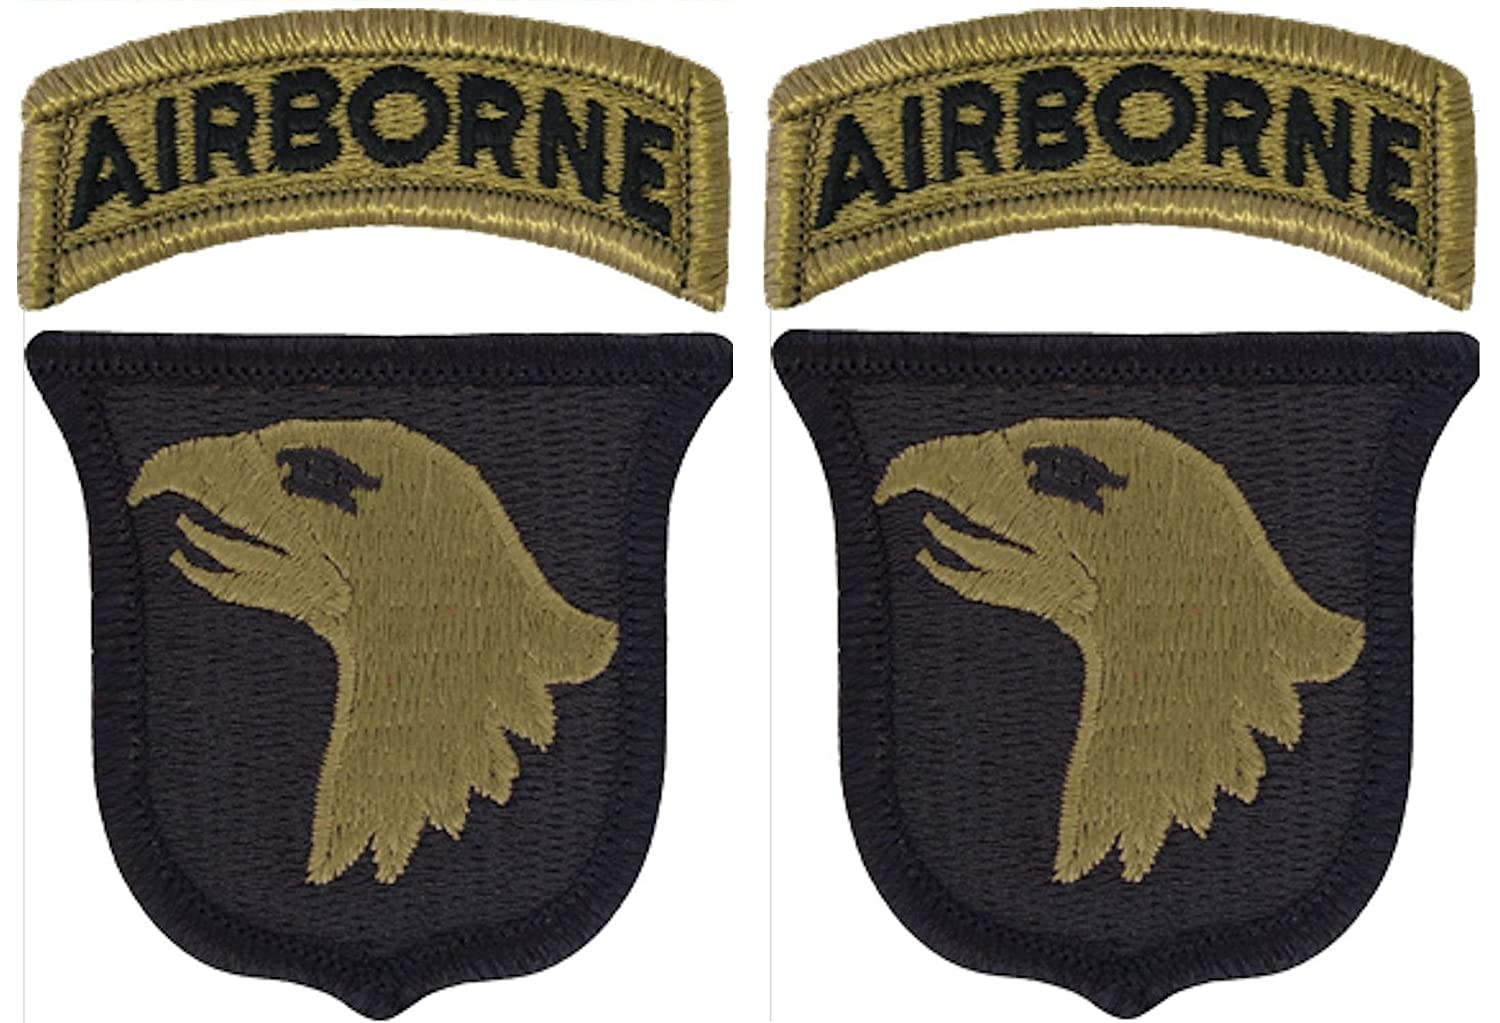 101st Airborne Division OCP Patch with Airborne Tab - Scorpion W2 - 2 PACK 4337027383